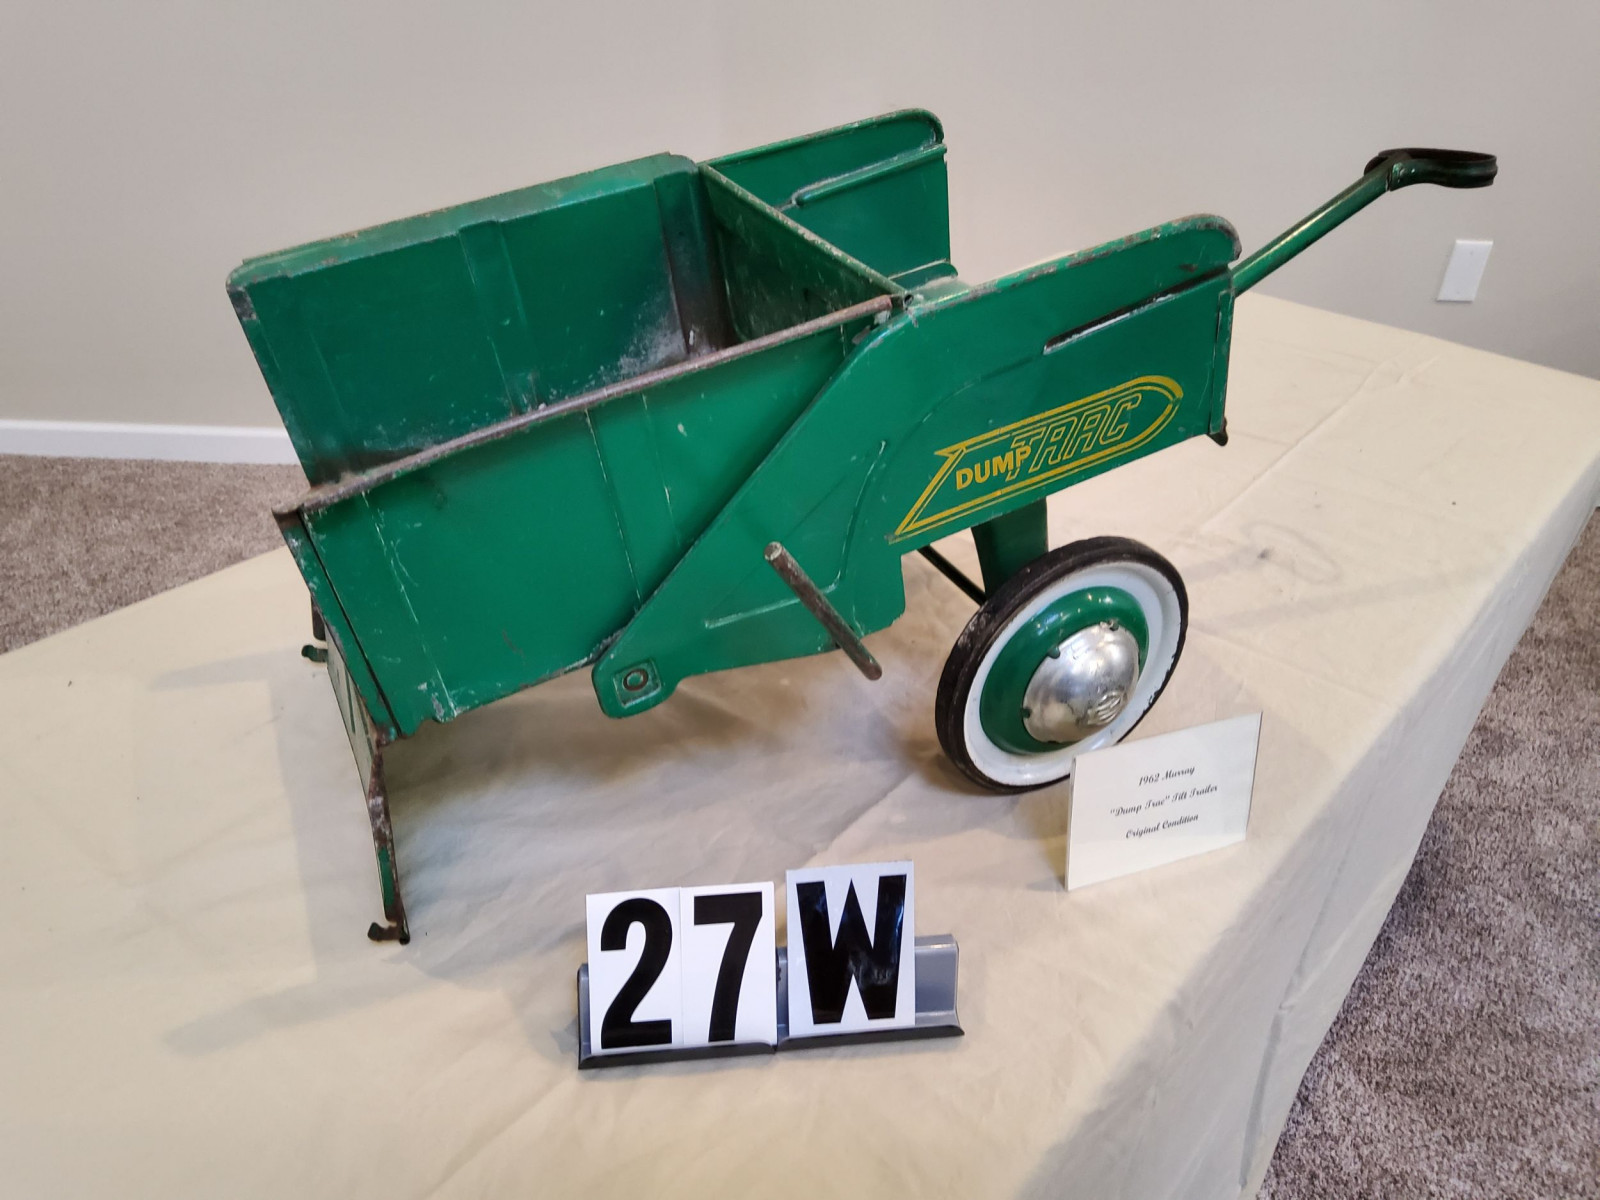 1962 Murray wagon Pedal Car - Image 1